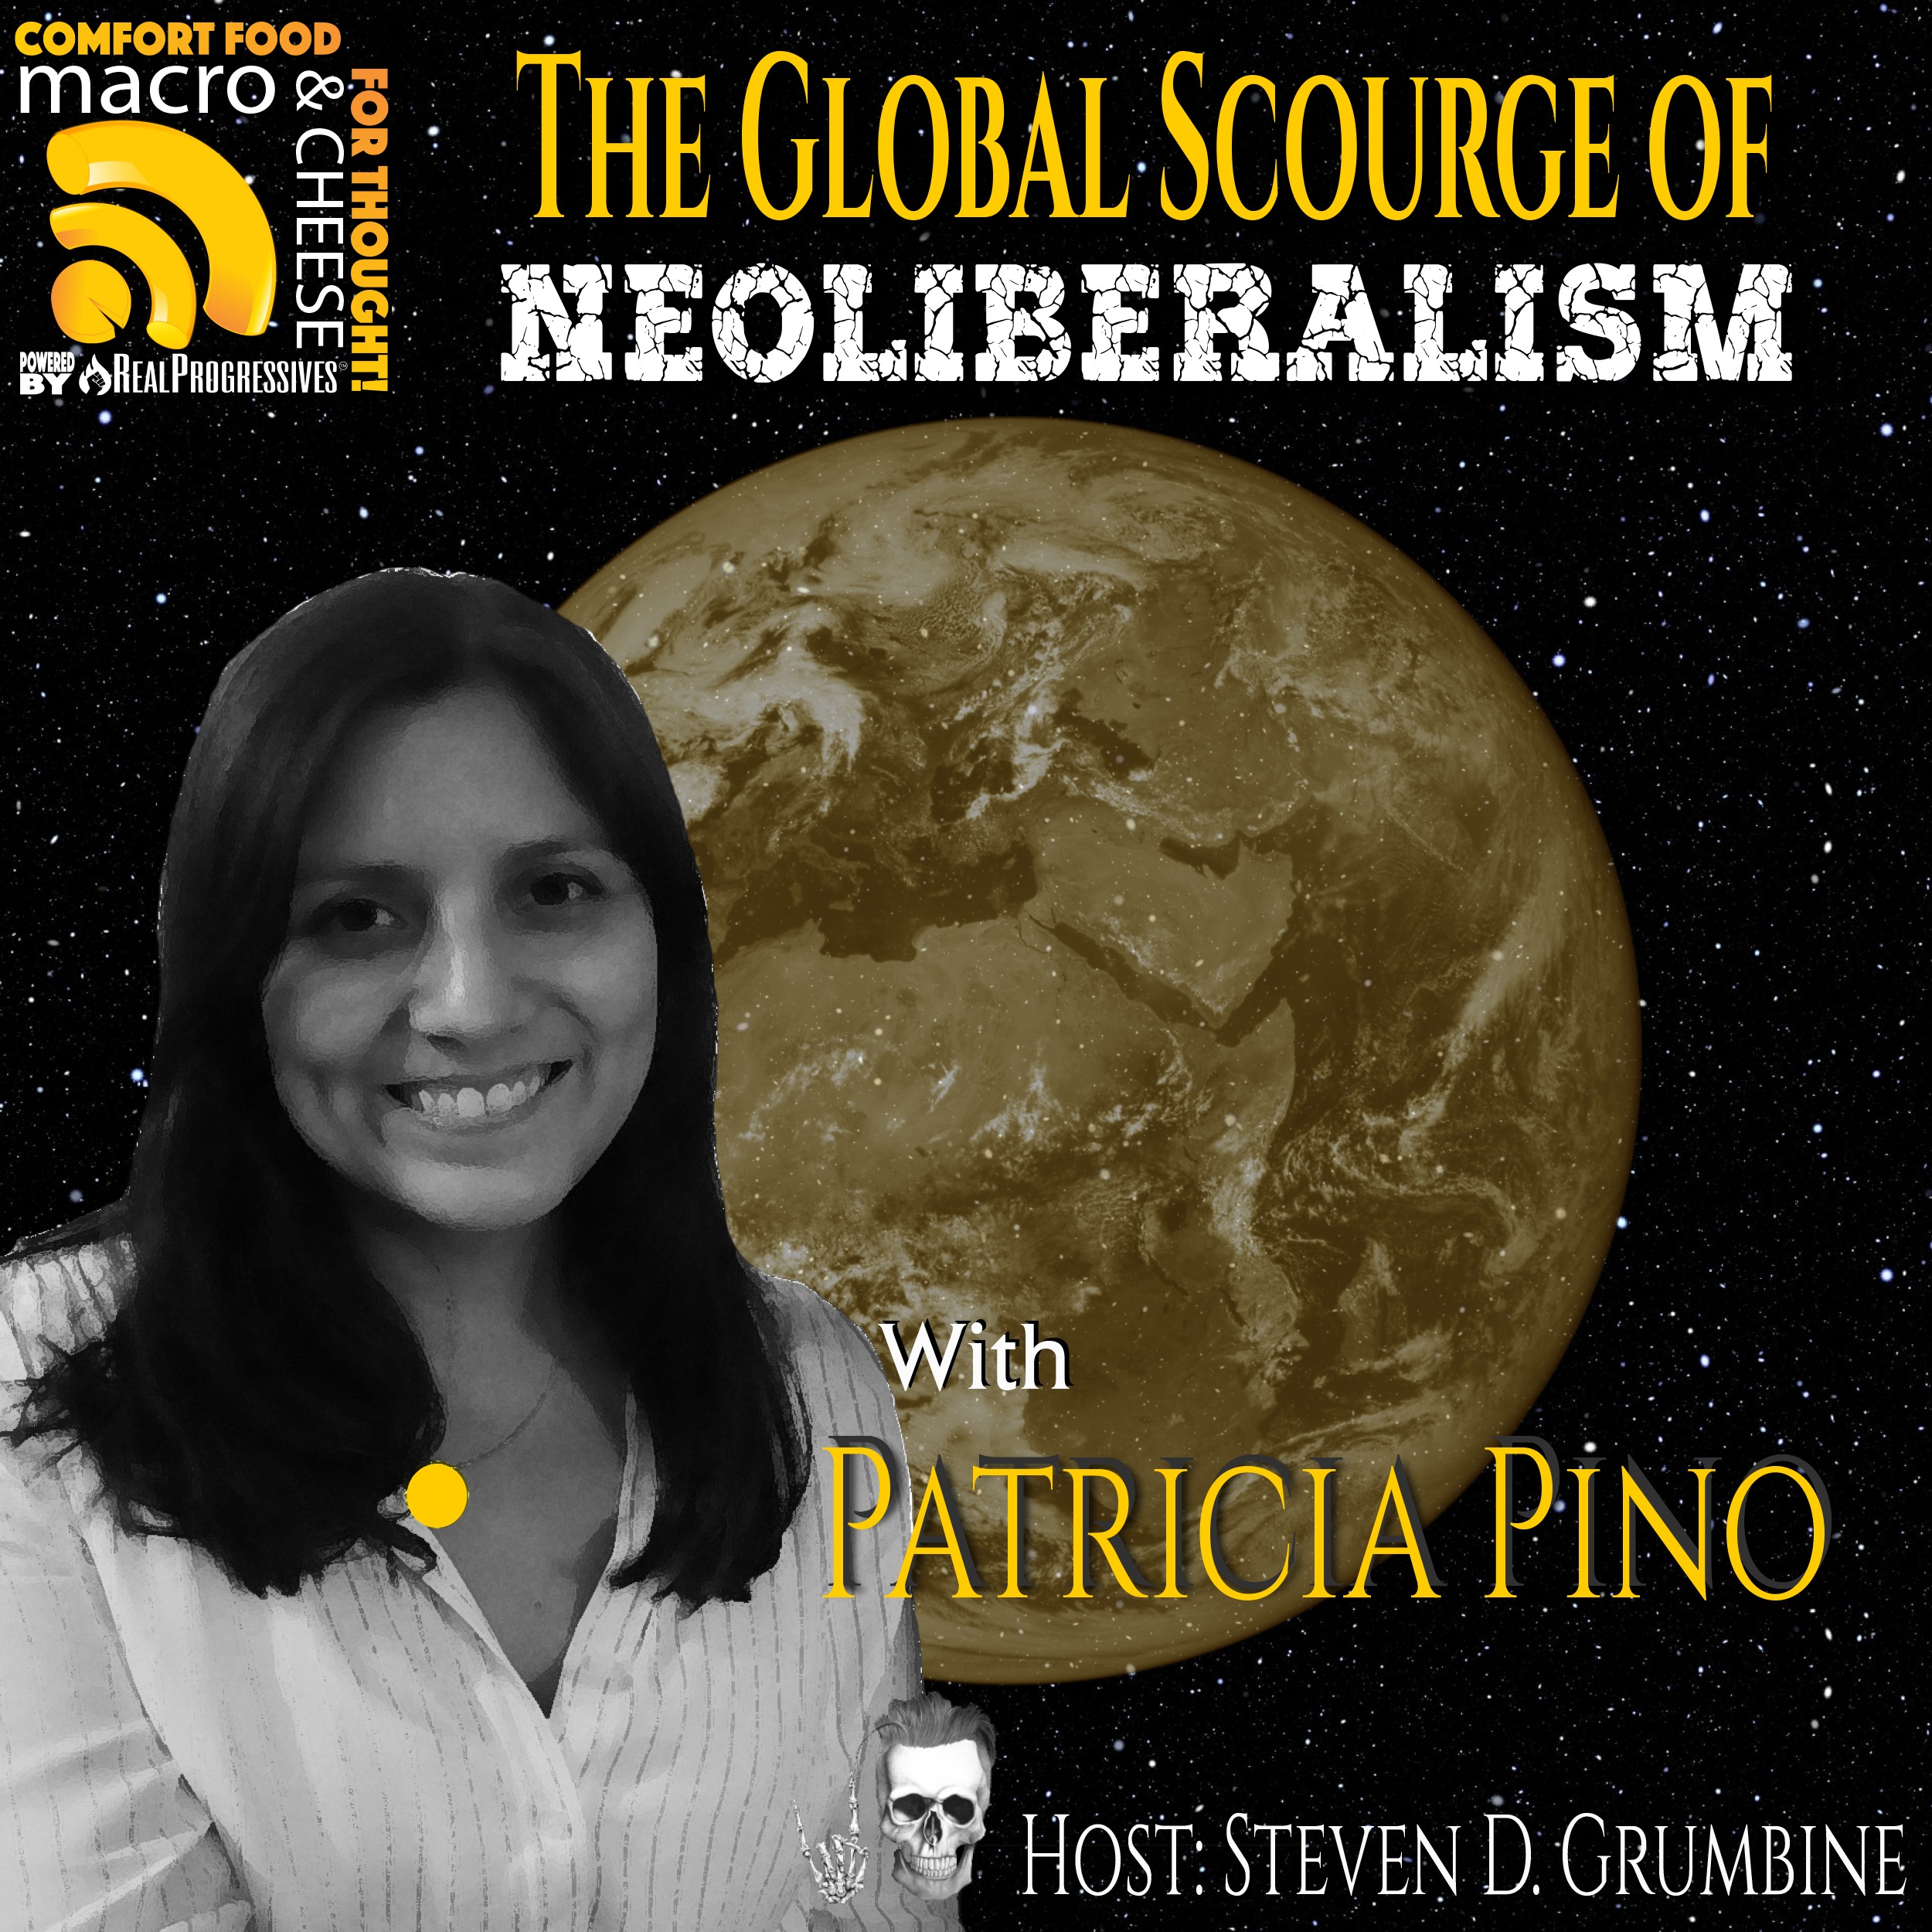 The Global Scourge of Neoliberalism with Patricia Pino